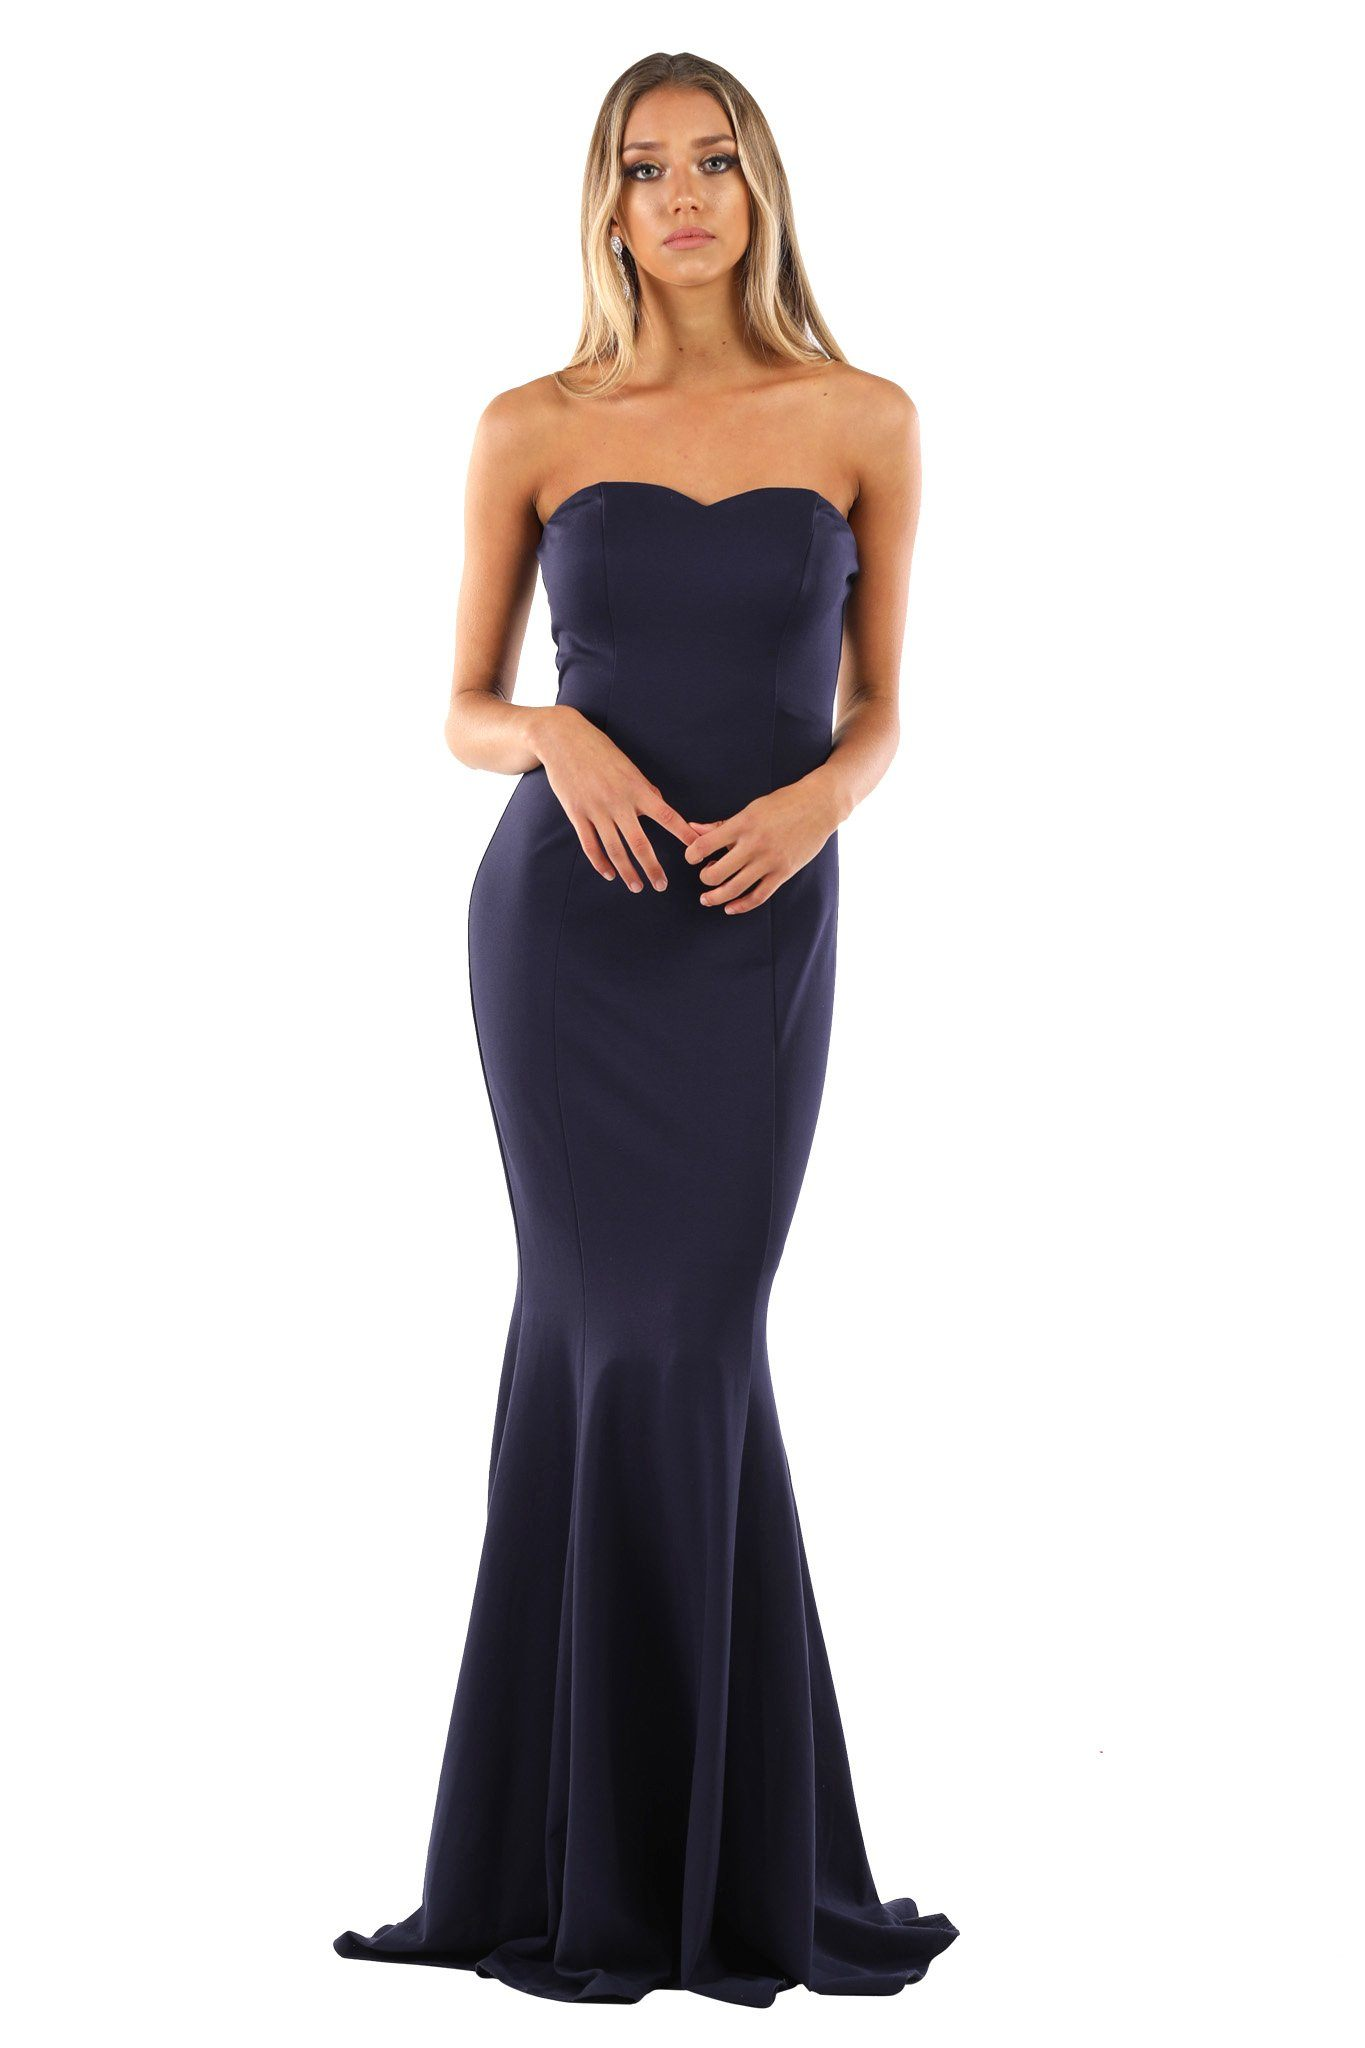 Navy dark blue strapless sleeveless floor length evening fitted bodycon gown with sweetheart neckline and mermaid tail